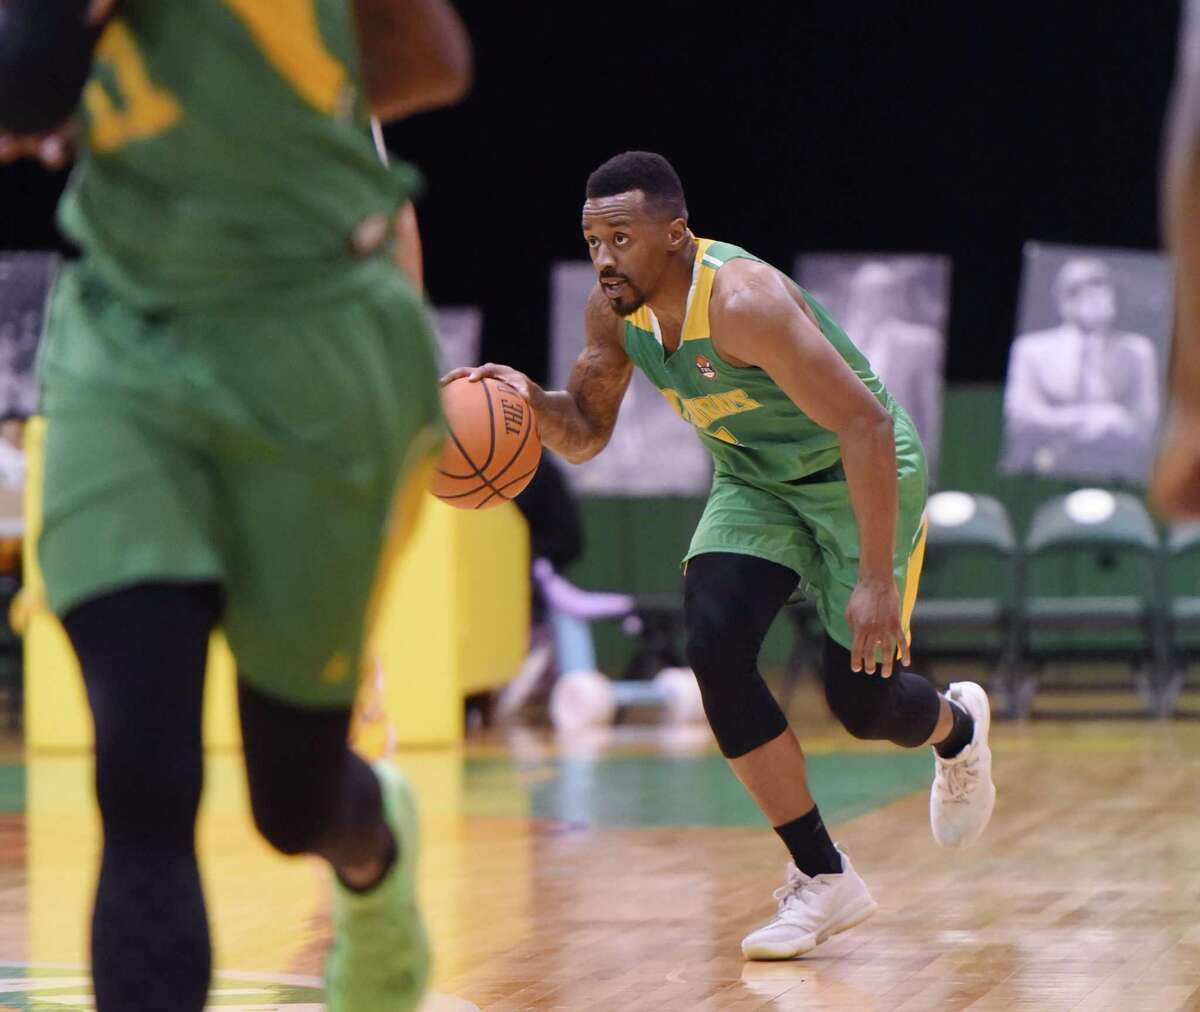 Albany Patroons guard Joshua Cameron dribbles the ball down the court during a game against Raleigh on Friday, April 12, 2019 at the Washington Avenue Armory in Albany, NY. (Phoebe Sheehan/Times Union)